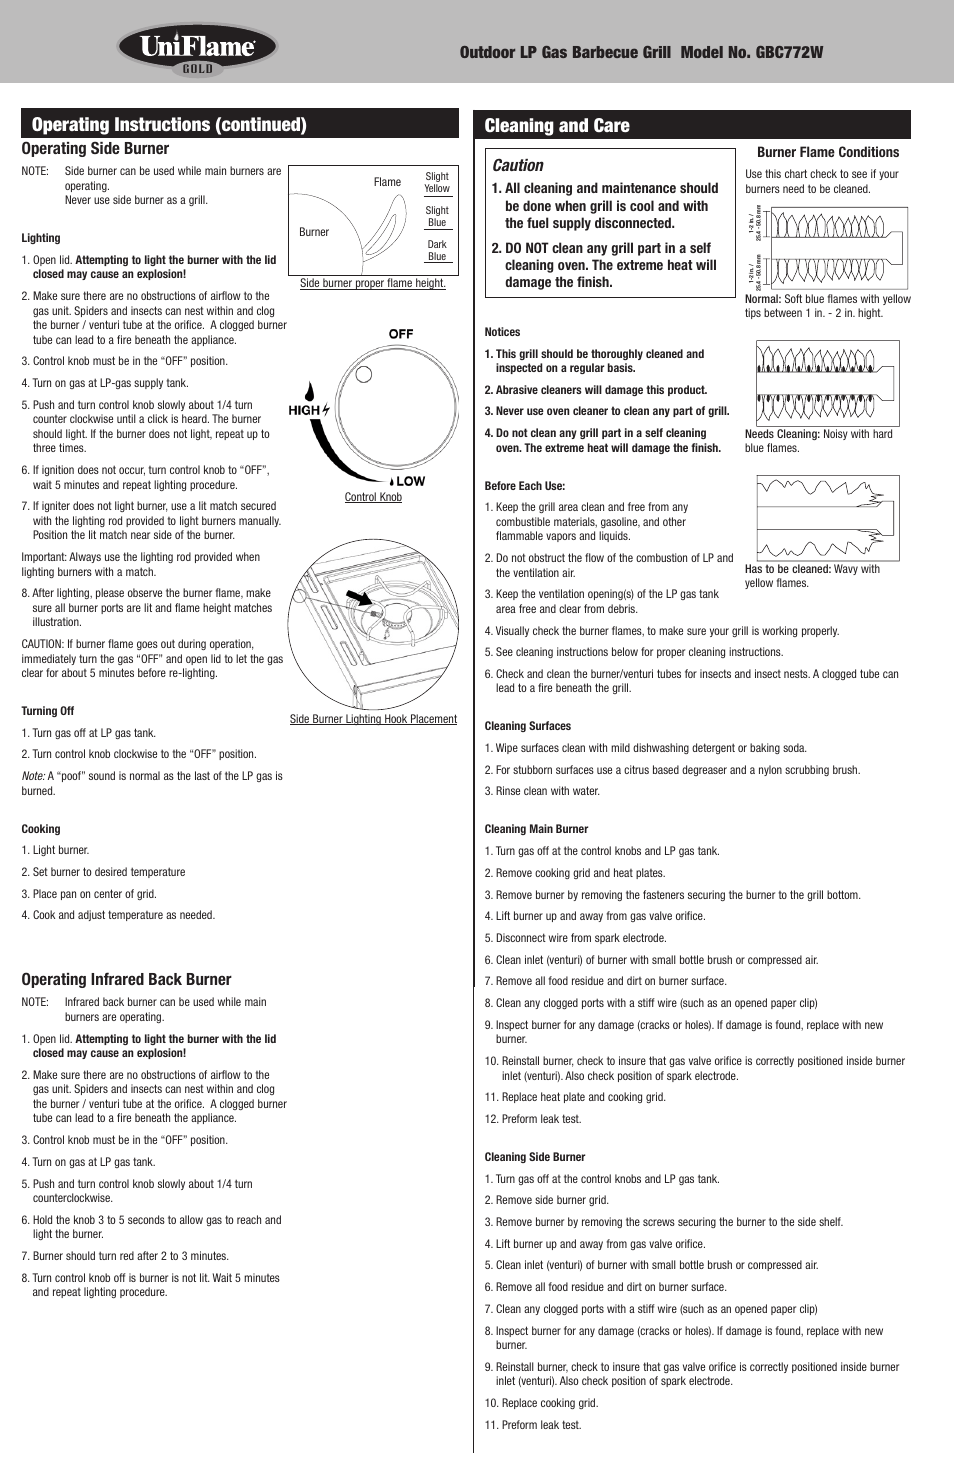 Cleaning and care, Operating instructions (continued